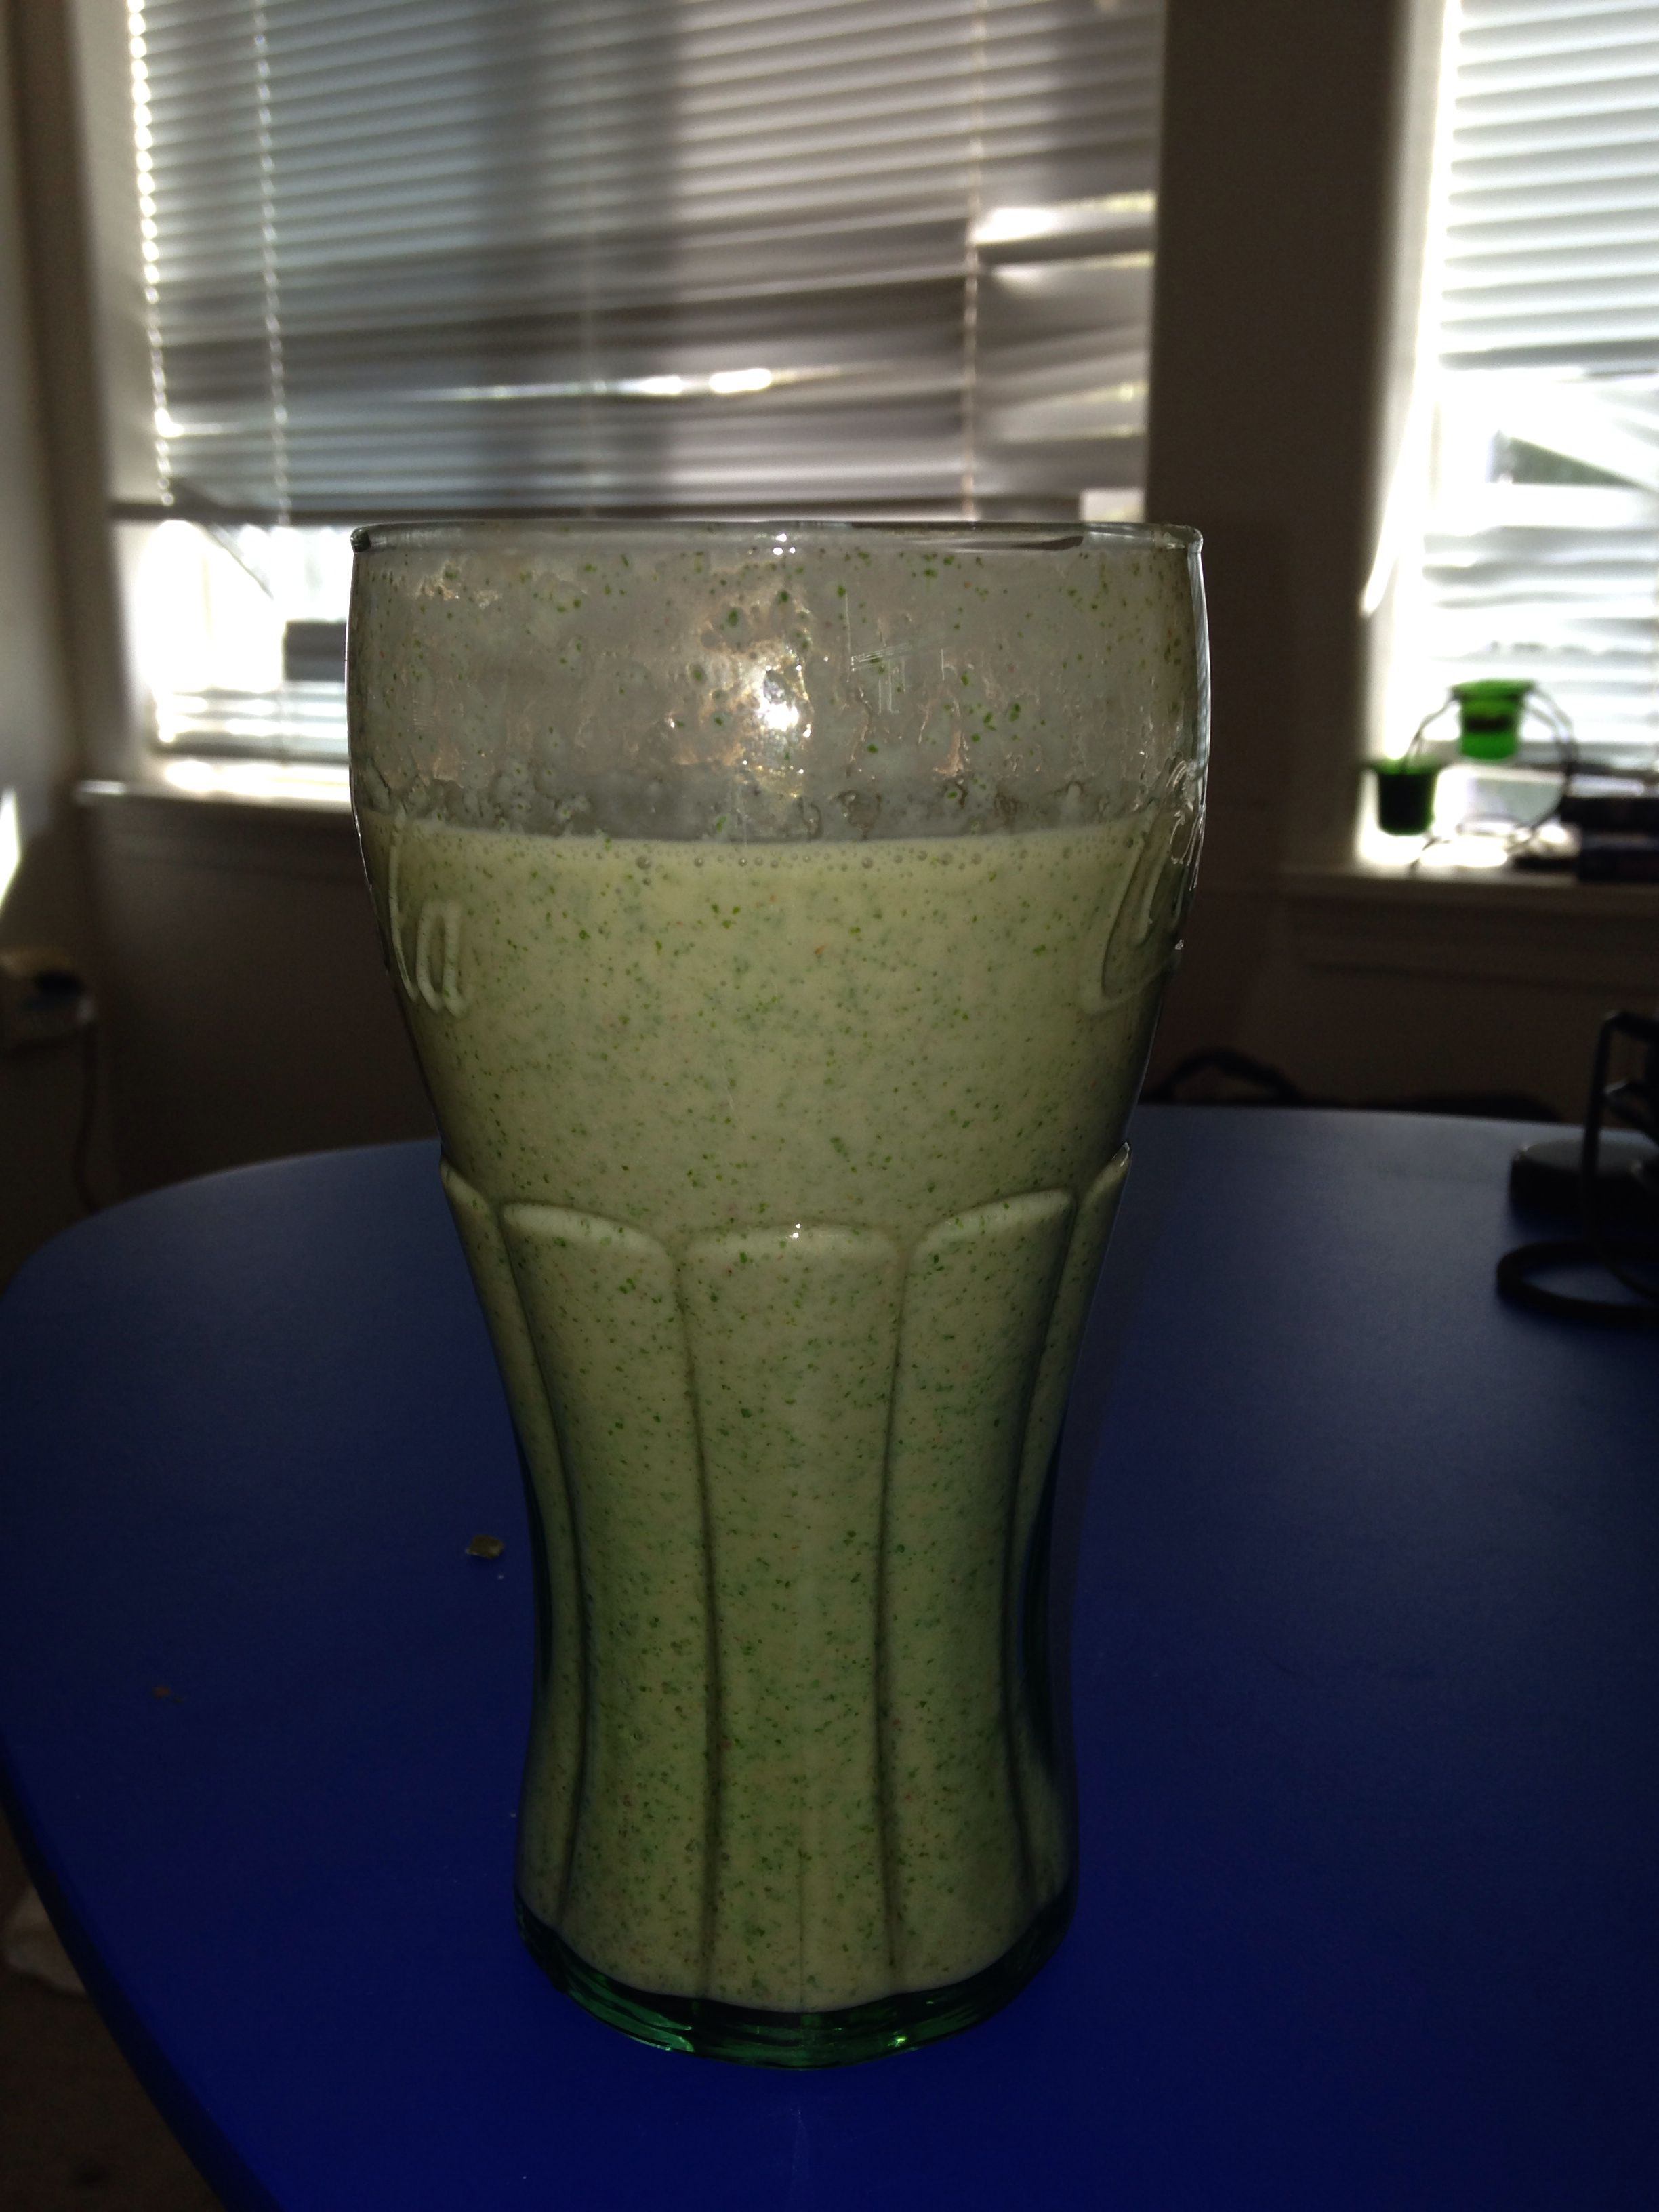 1 cup chopped kale, 1 cup fresh strawberries, and 1 cup plain yogurt.